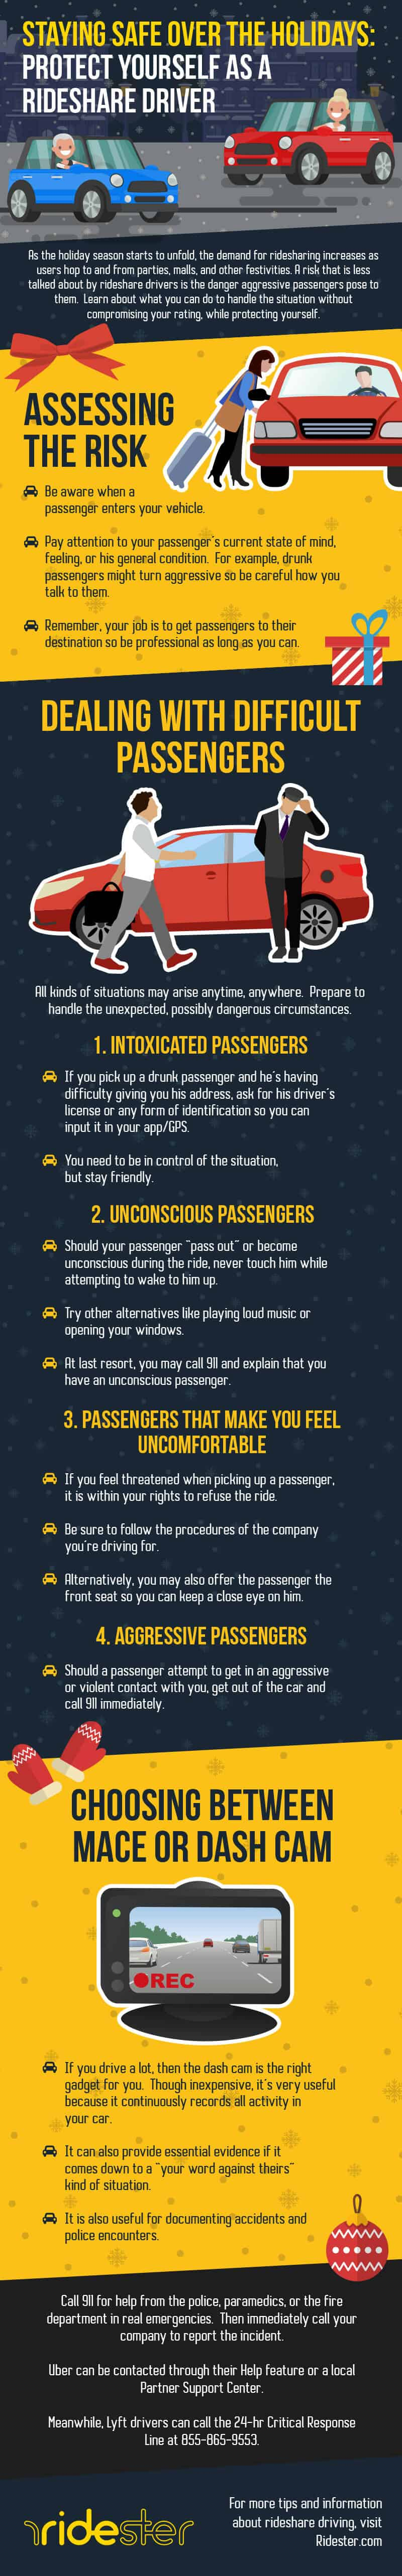 Staying Safe Over the Holidays Protect Yourself as a Rideshare Driver